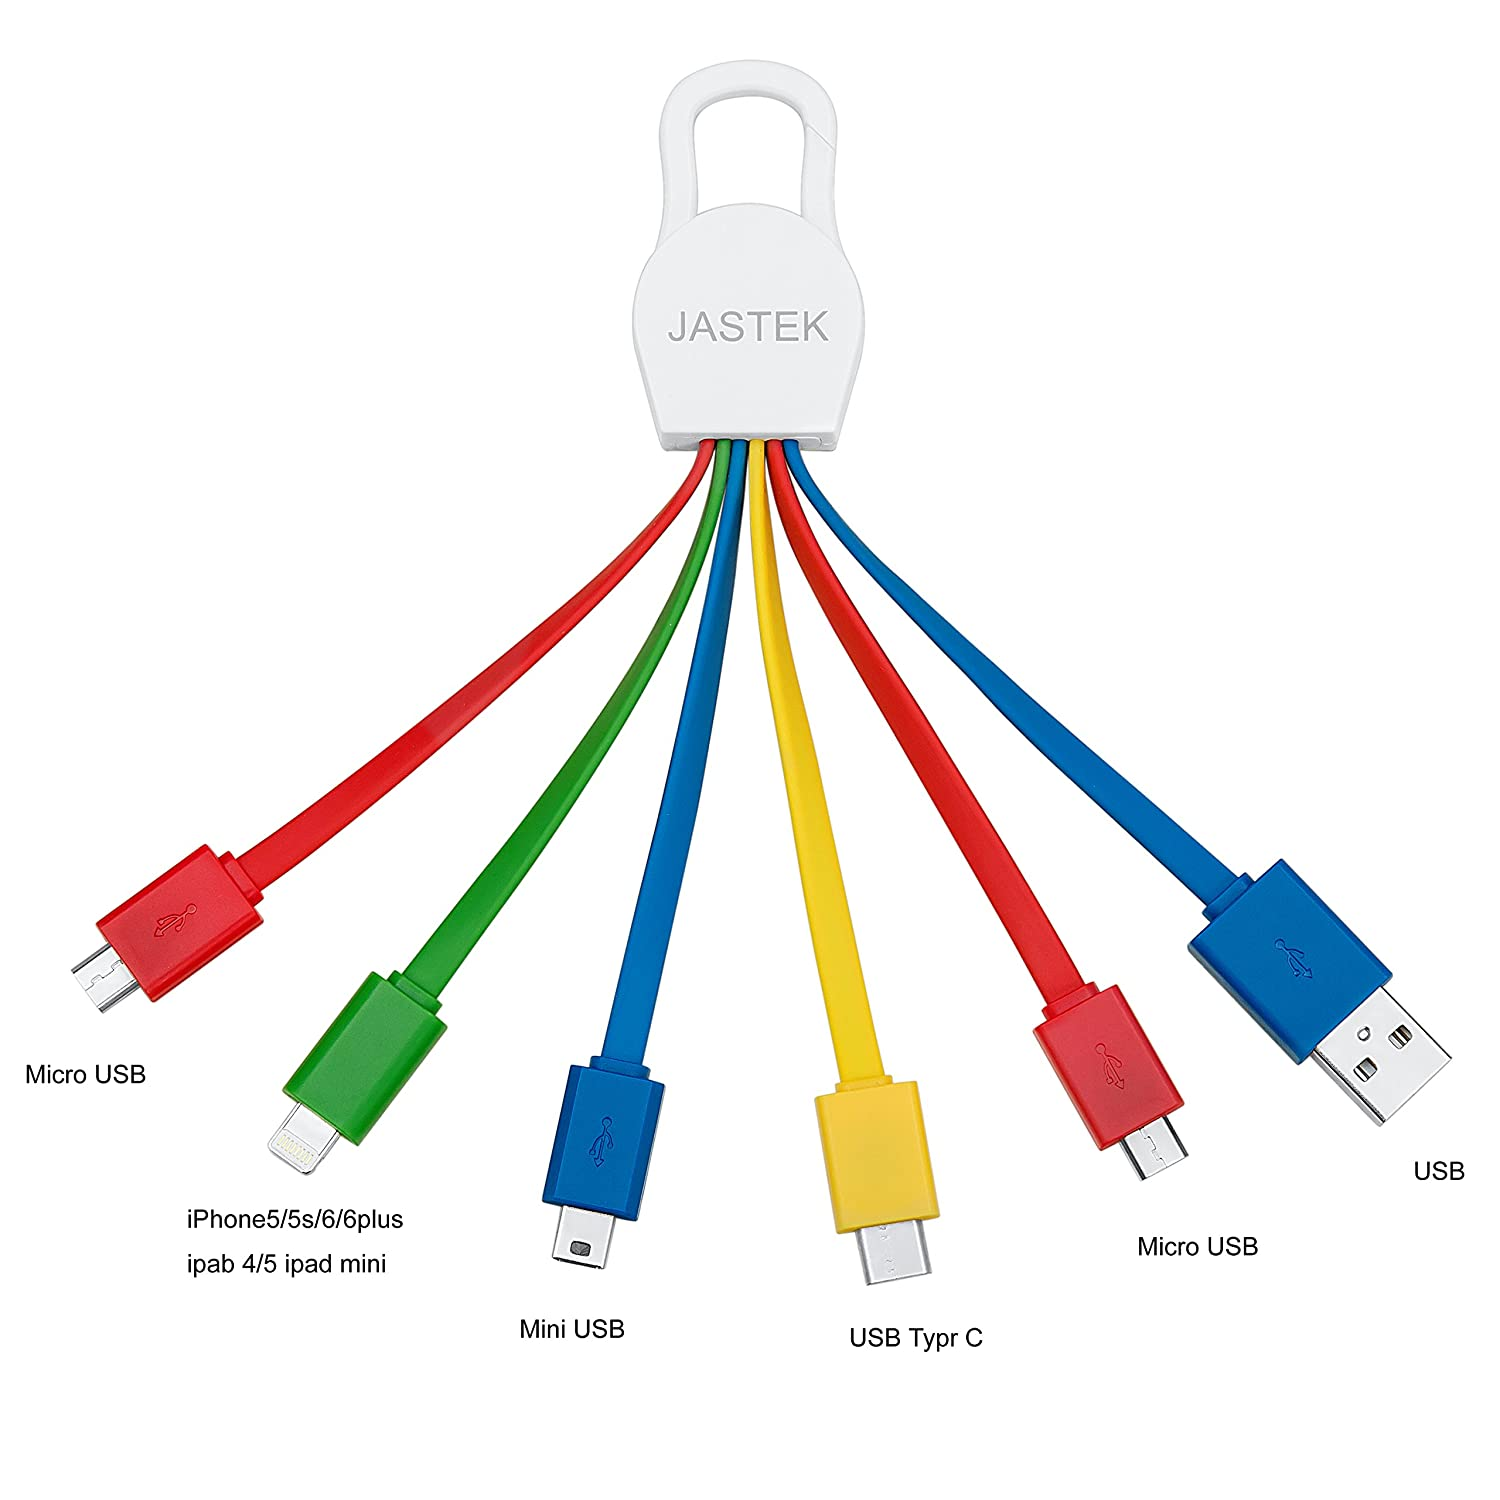 Jastek Multi Charging Cables With 8pin Connector Micro Usb